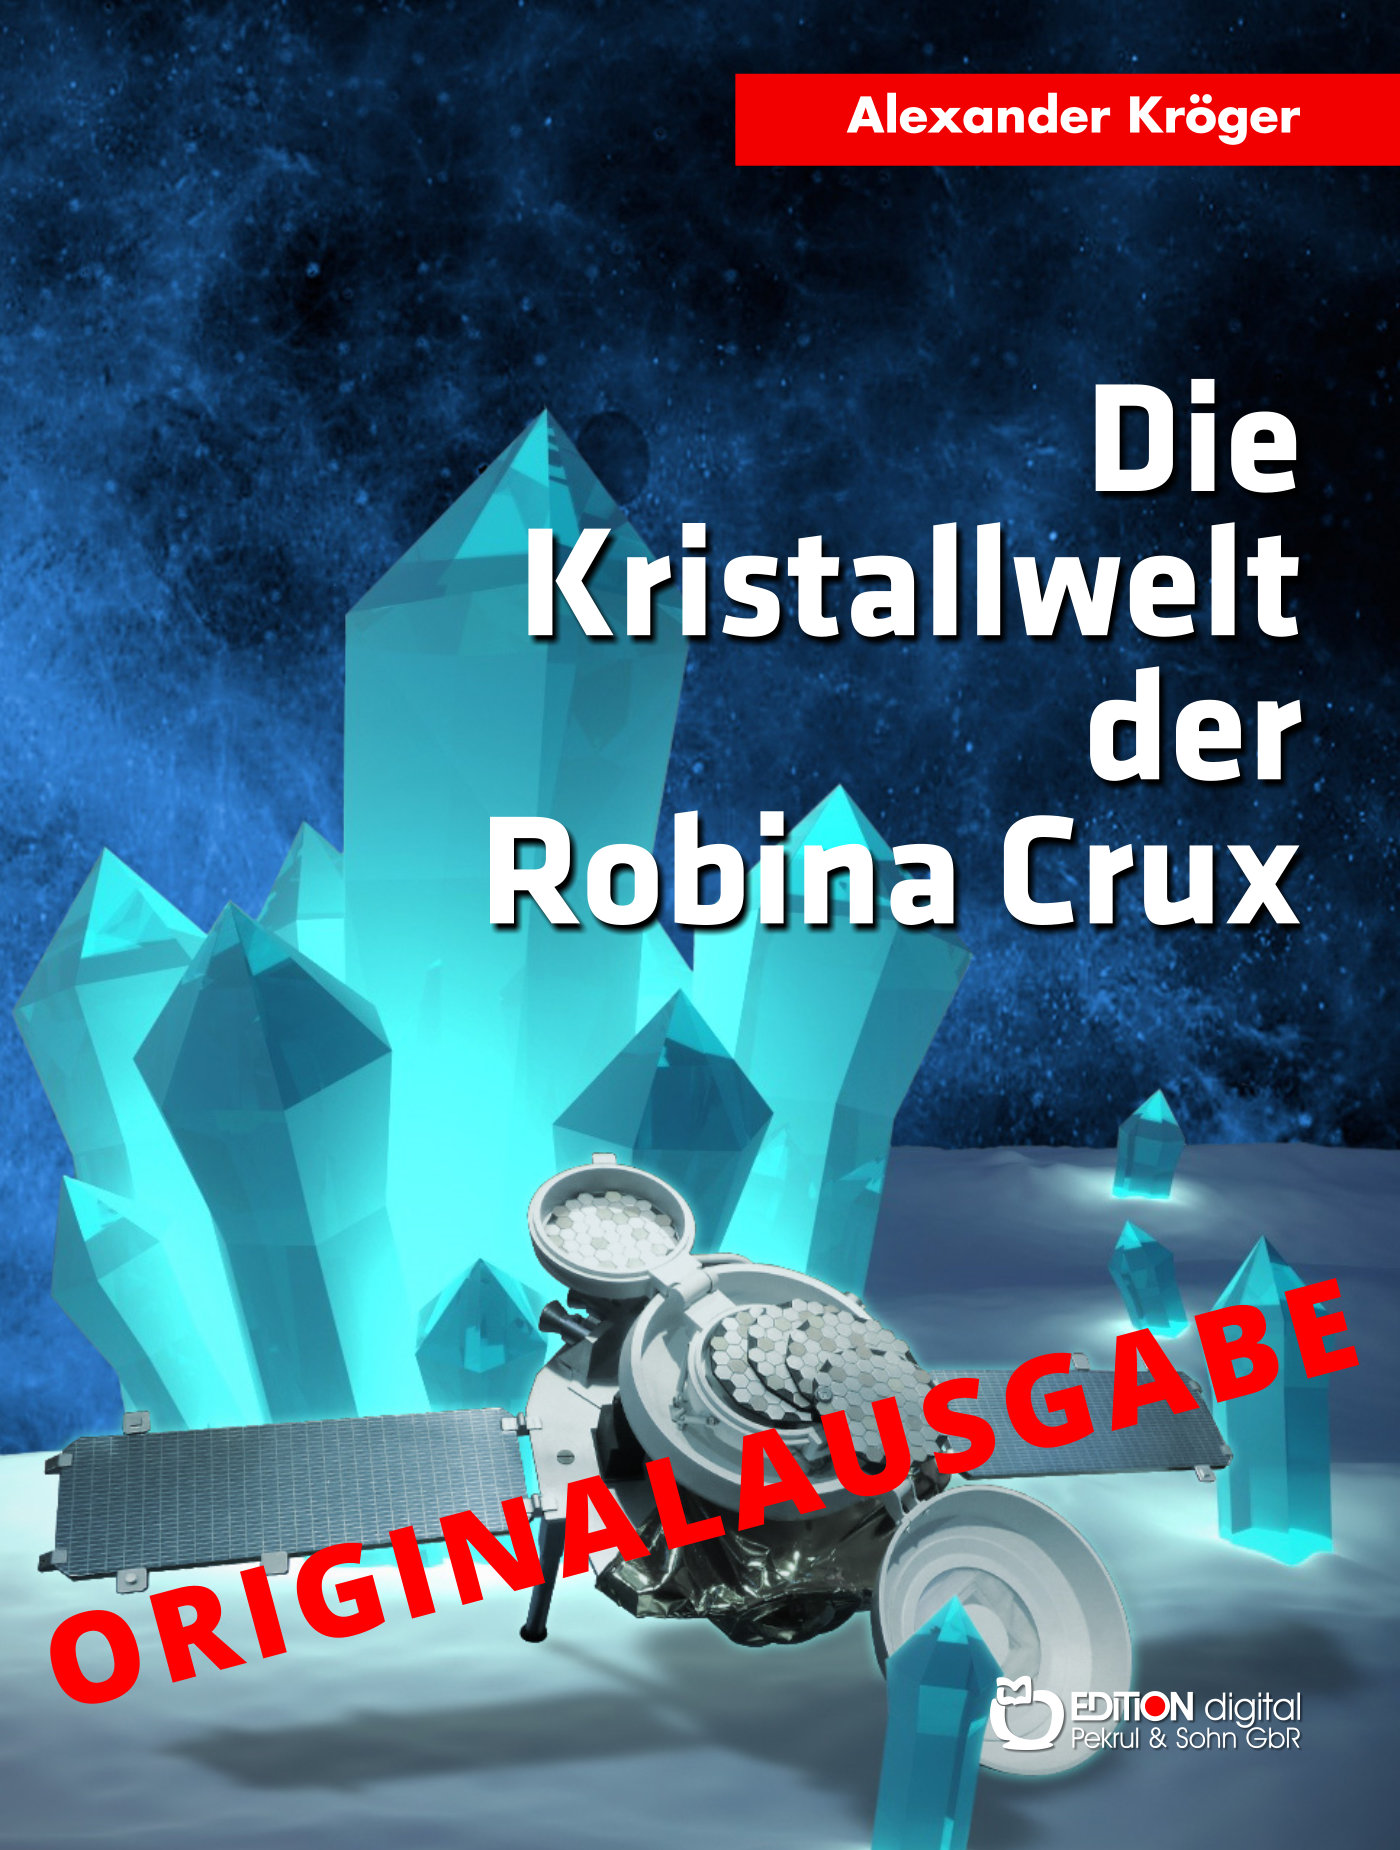 Die Kristallwelt der Robina Crux - Originalausgabe.Wissenschaftlich-phantastischer Roman von Alexander Kröger